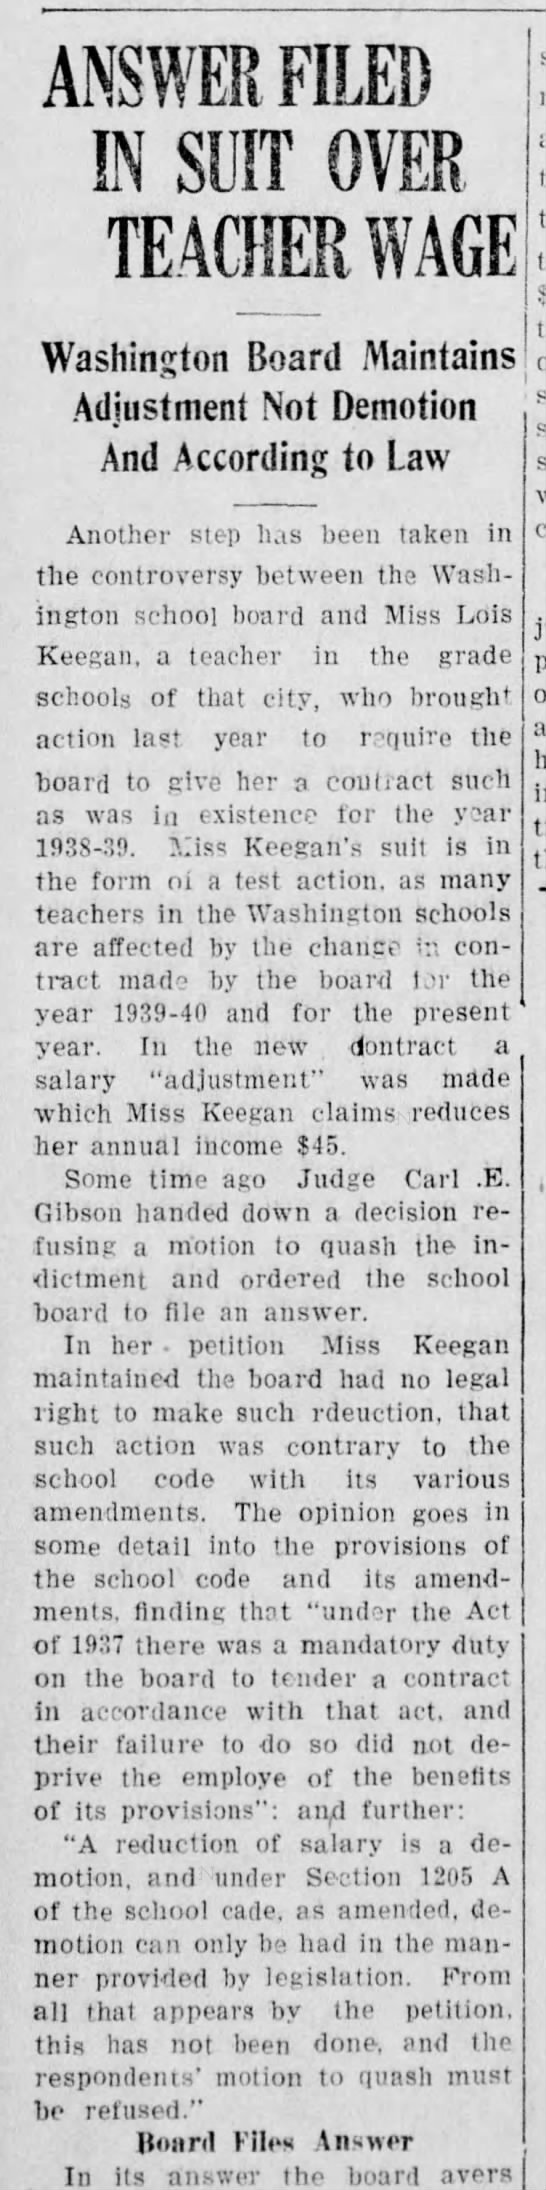 lois Keegan, The Daily Notes Canonsburg, March 12,1941